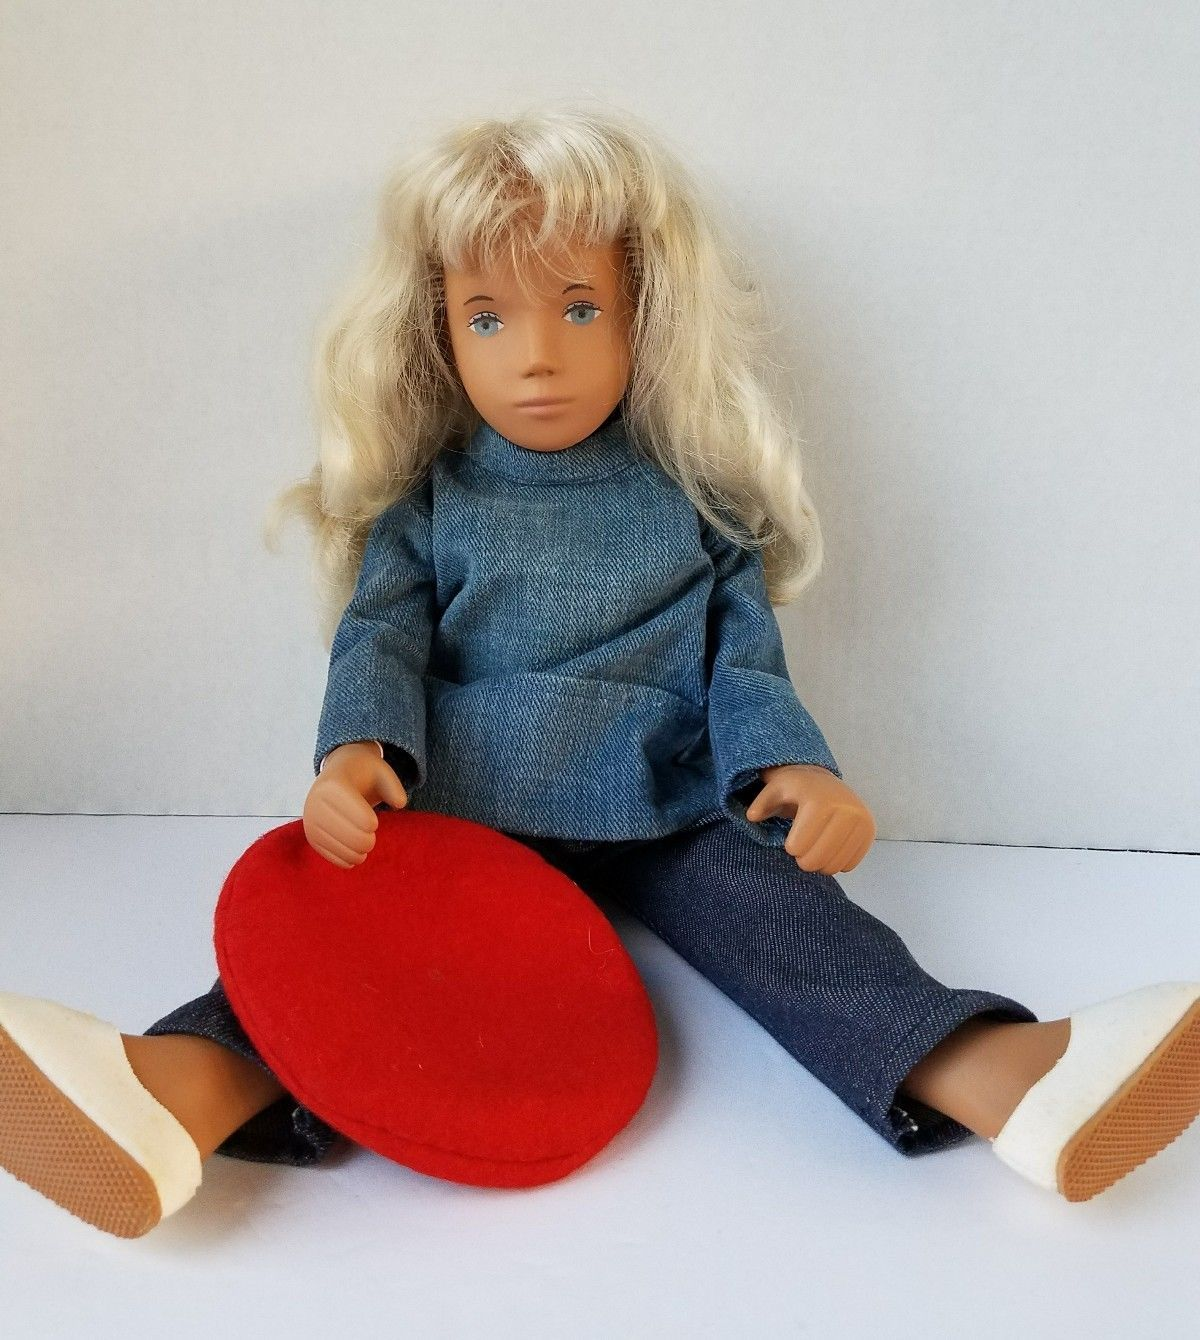 Vintage 1970s 110 Sasha Blond Sailing Suit Girl Doll W Box Wrist Bear Red Tag Nice